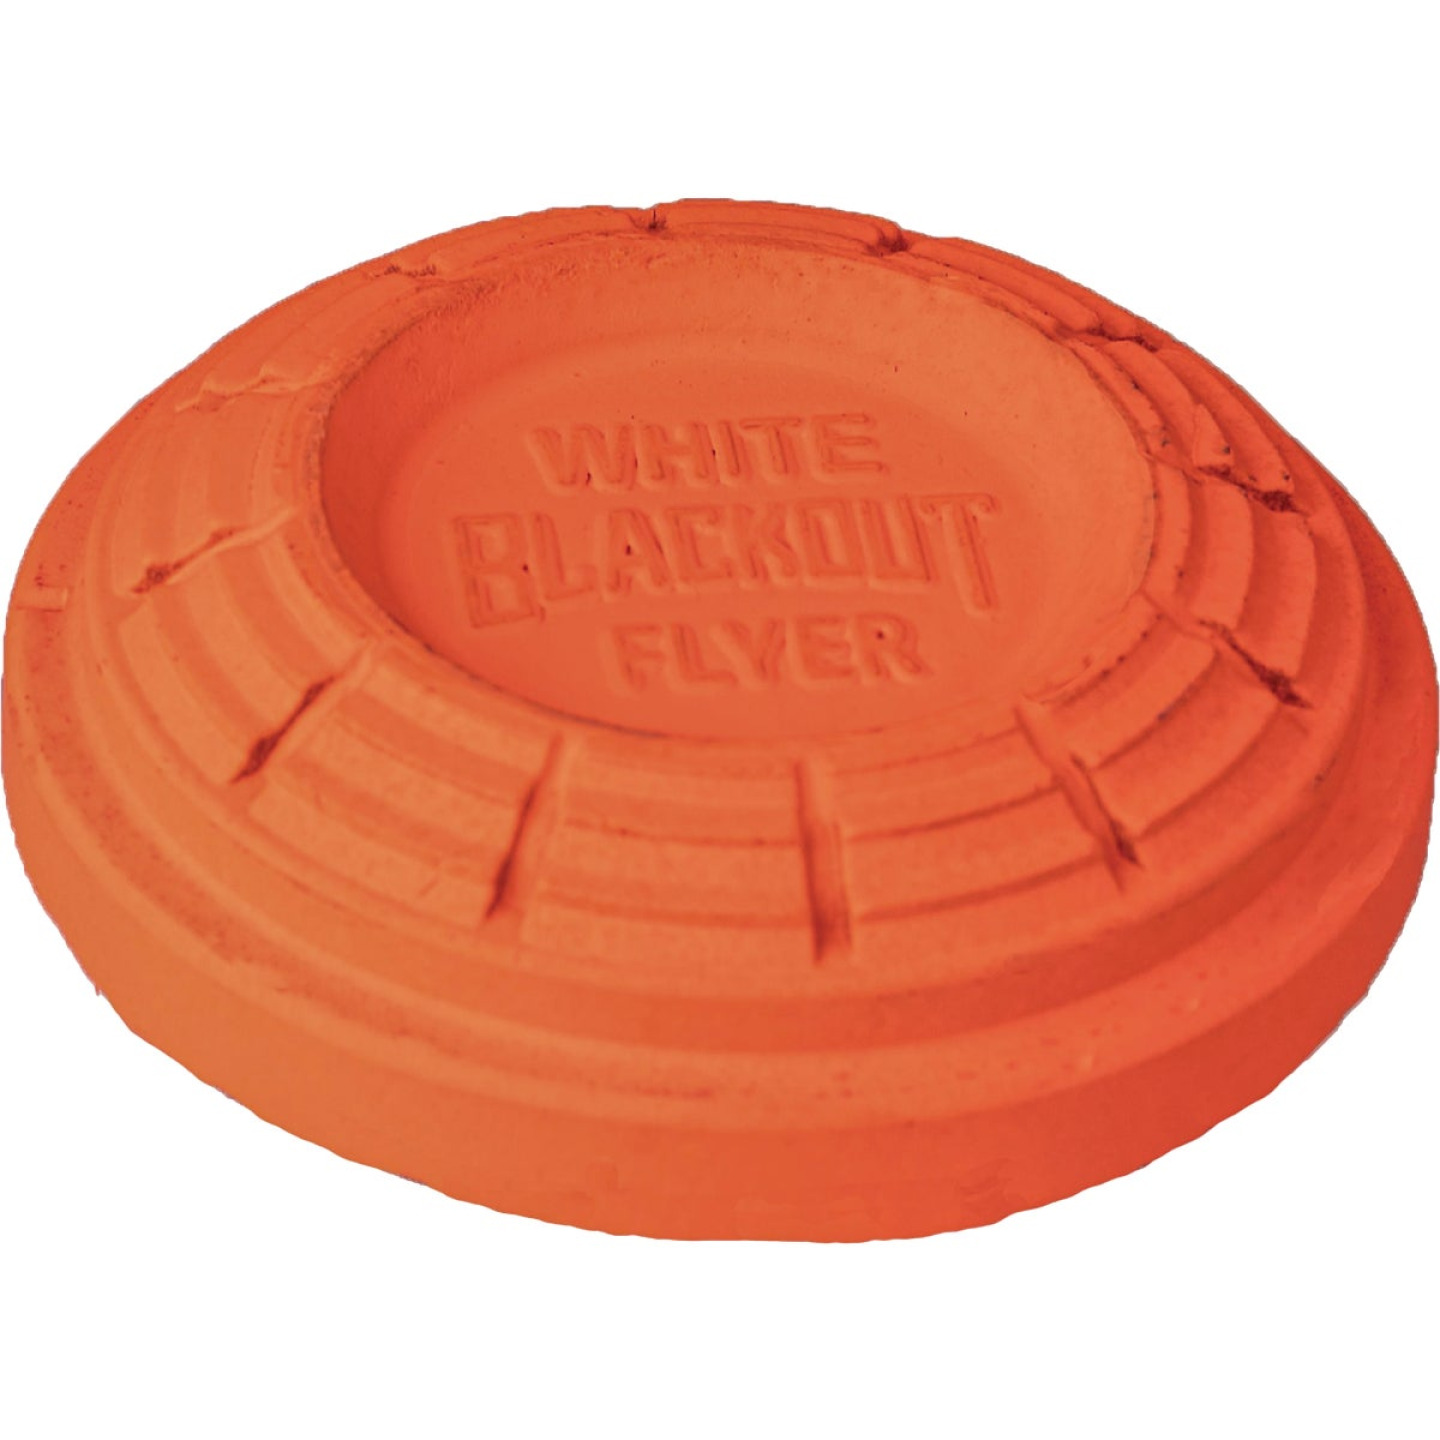 White Flyer Orange Clay Target (135-Pack) Image 1